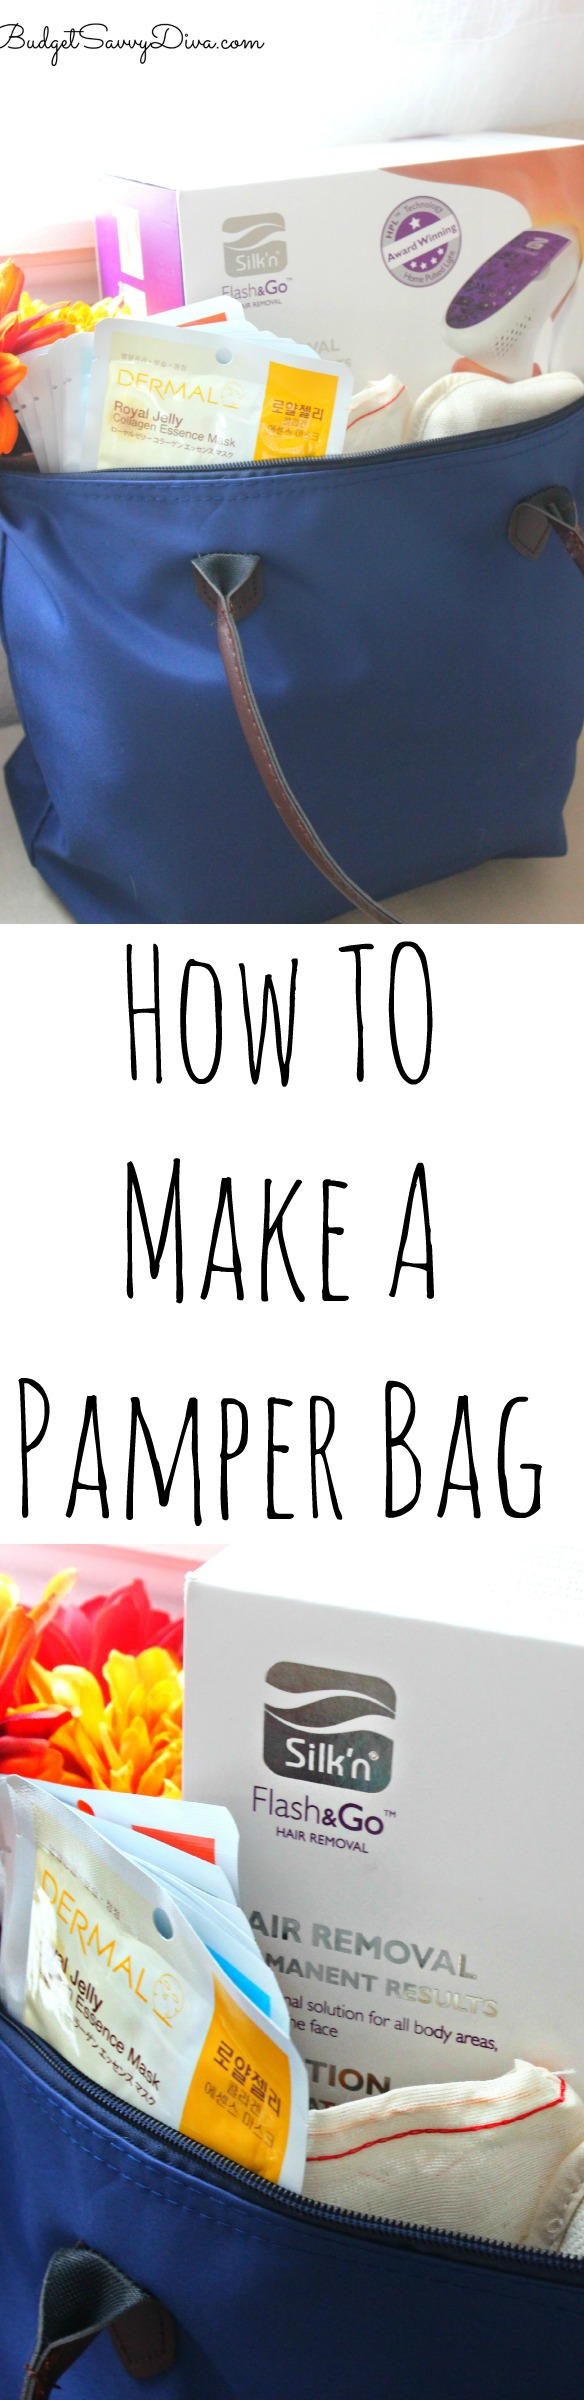 Pamper Bag Flash